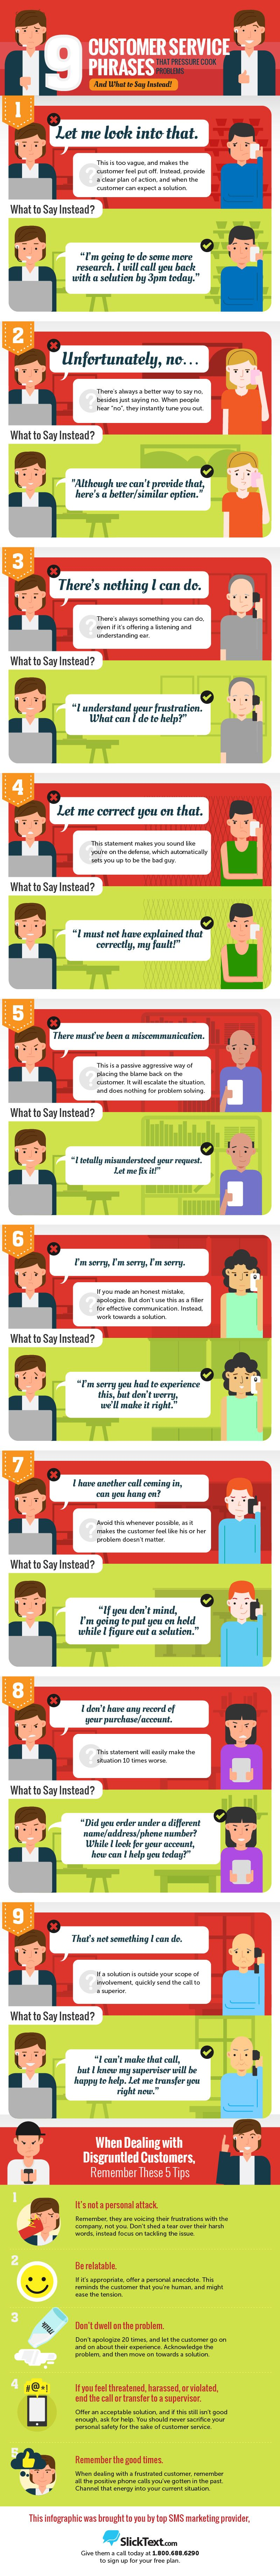 9 Customer Service Phrases that Pressure Cook Problems and What to Say Instead #infographic